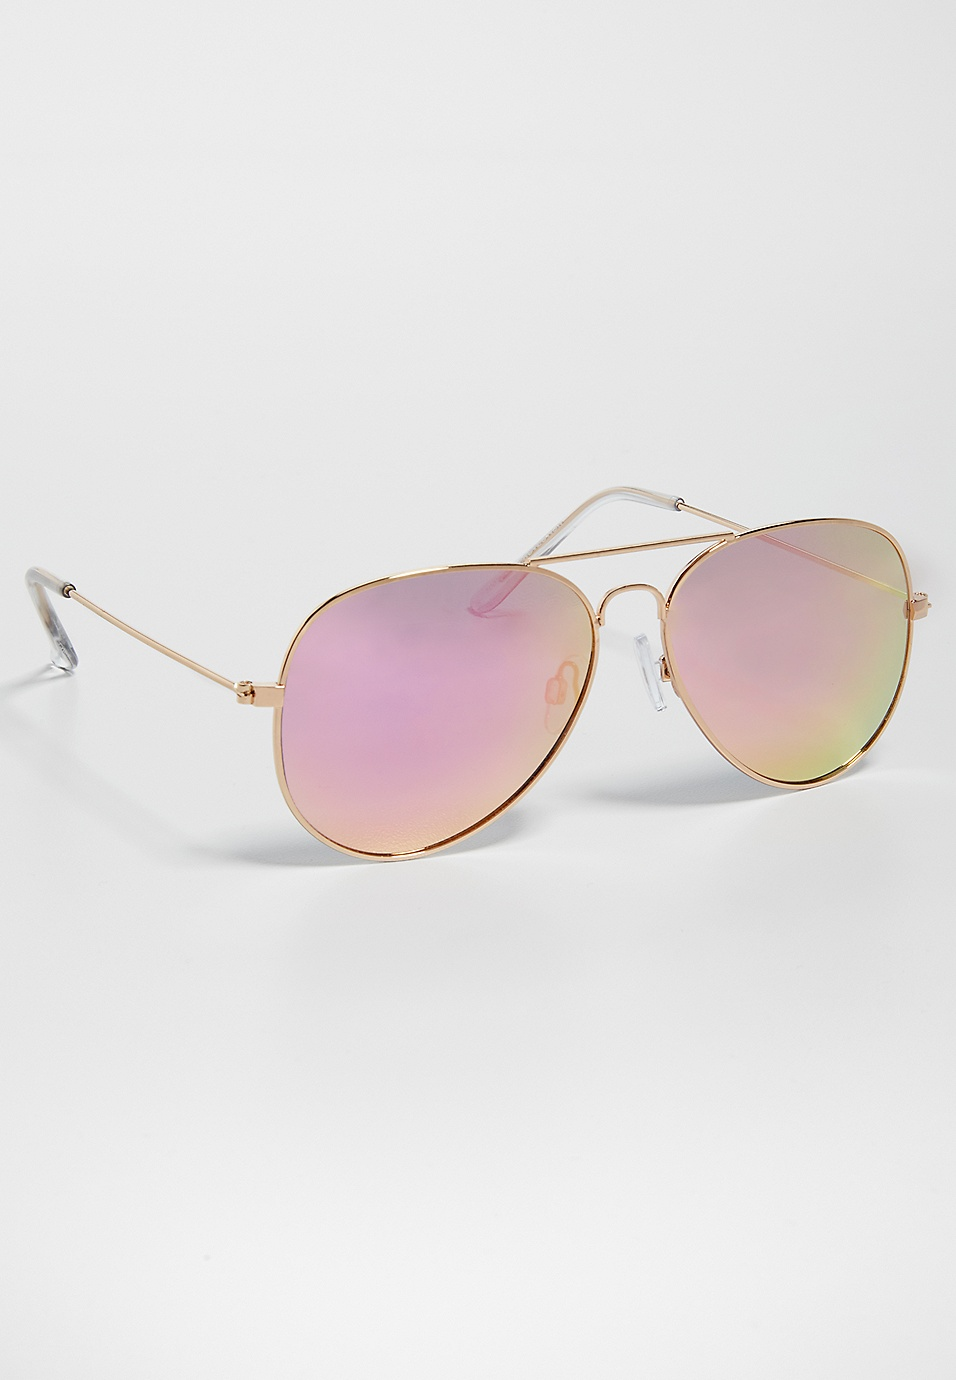 be37b900bff4 aviator sunglasses